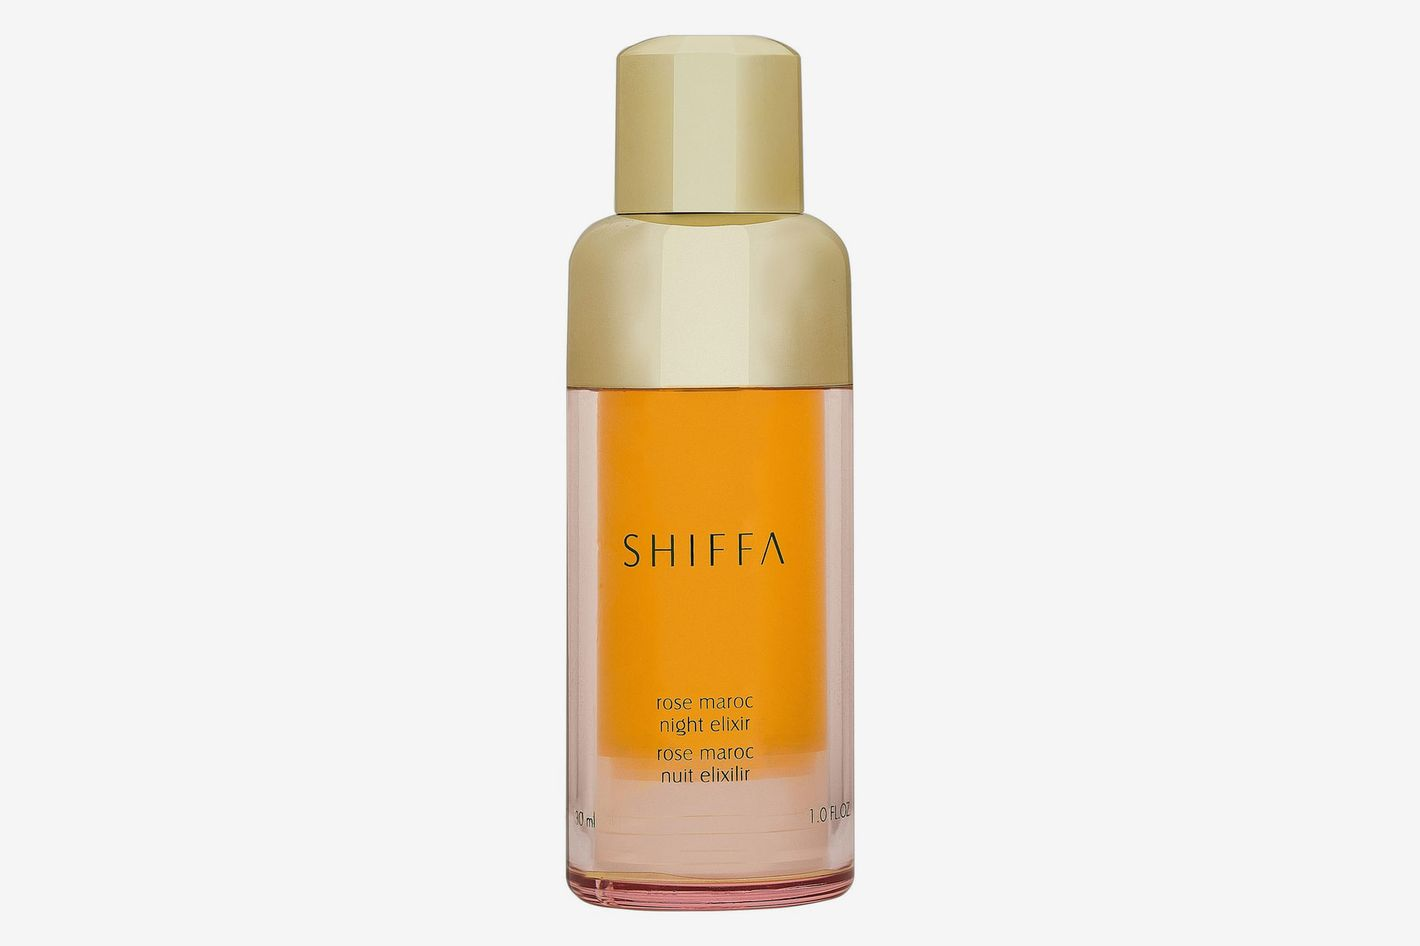 Shiffa Rose Maroc Night Elixir